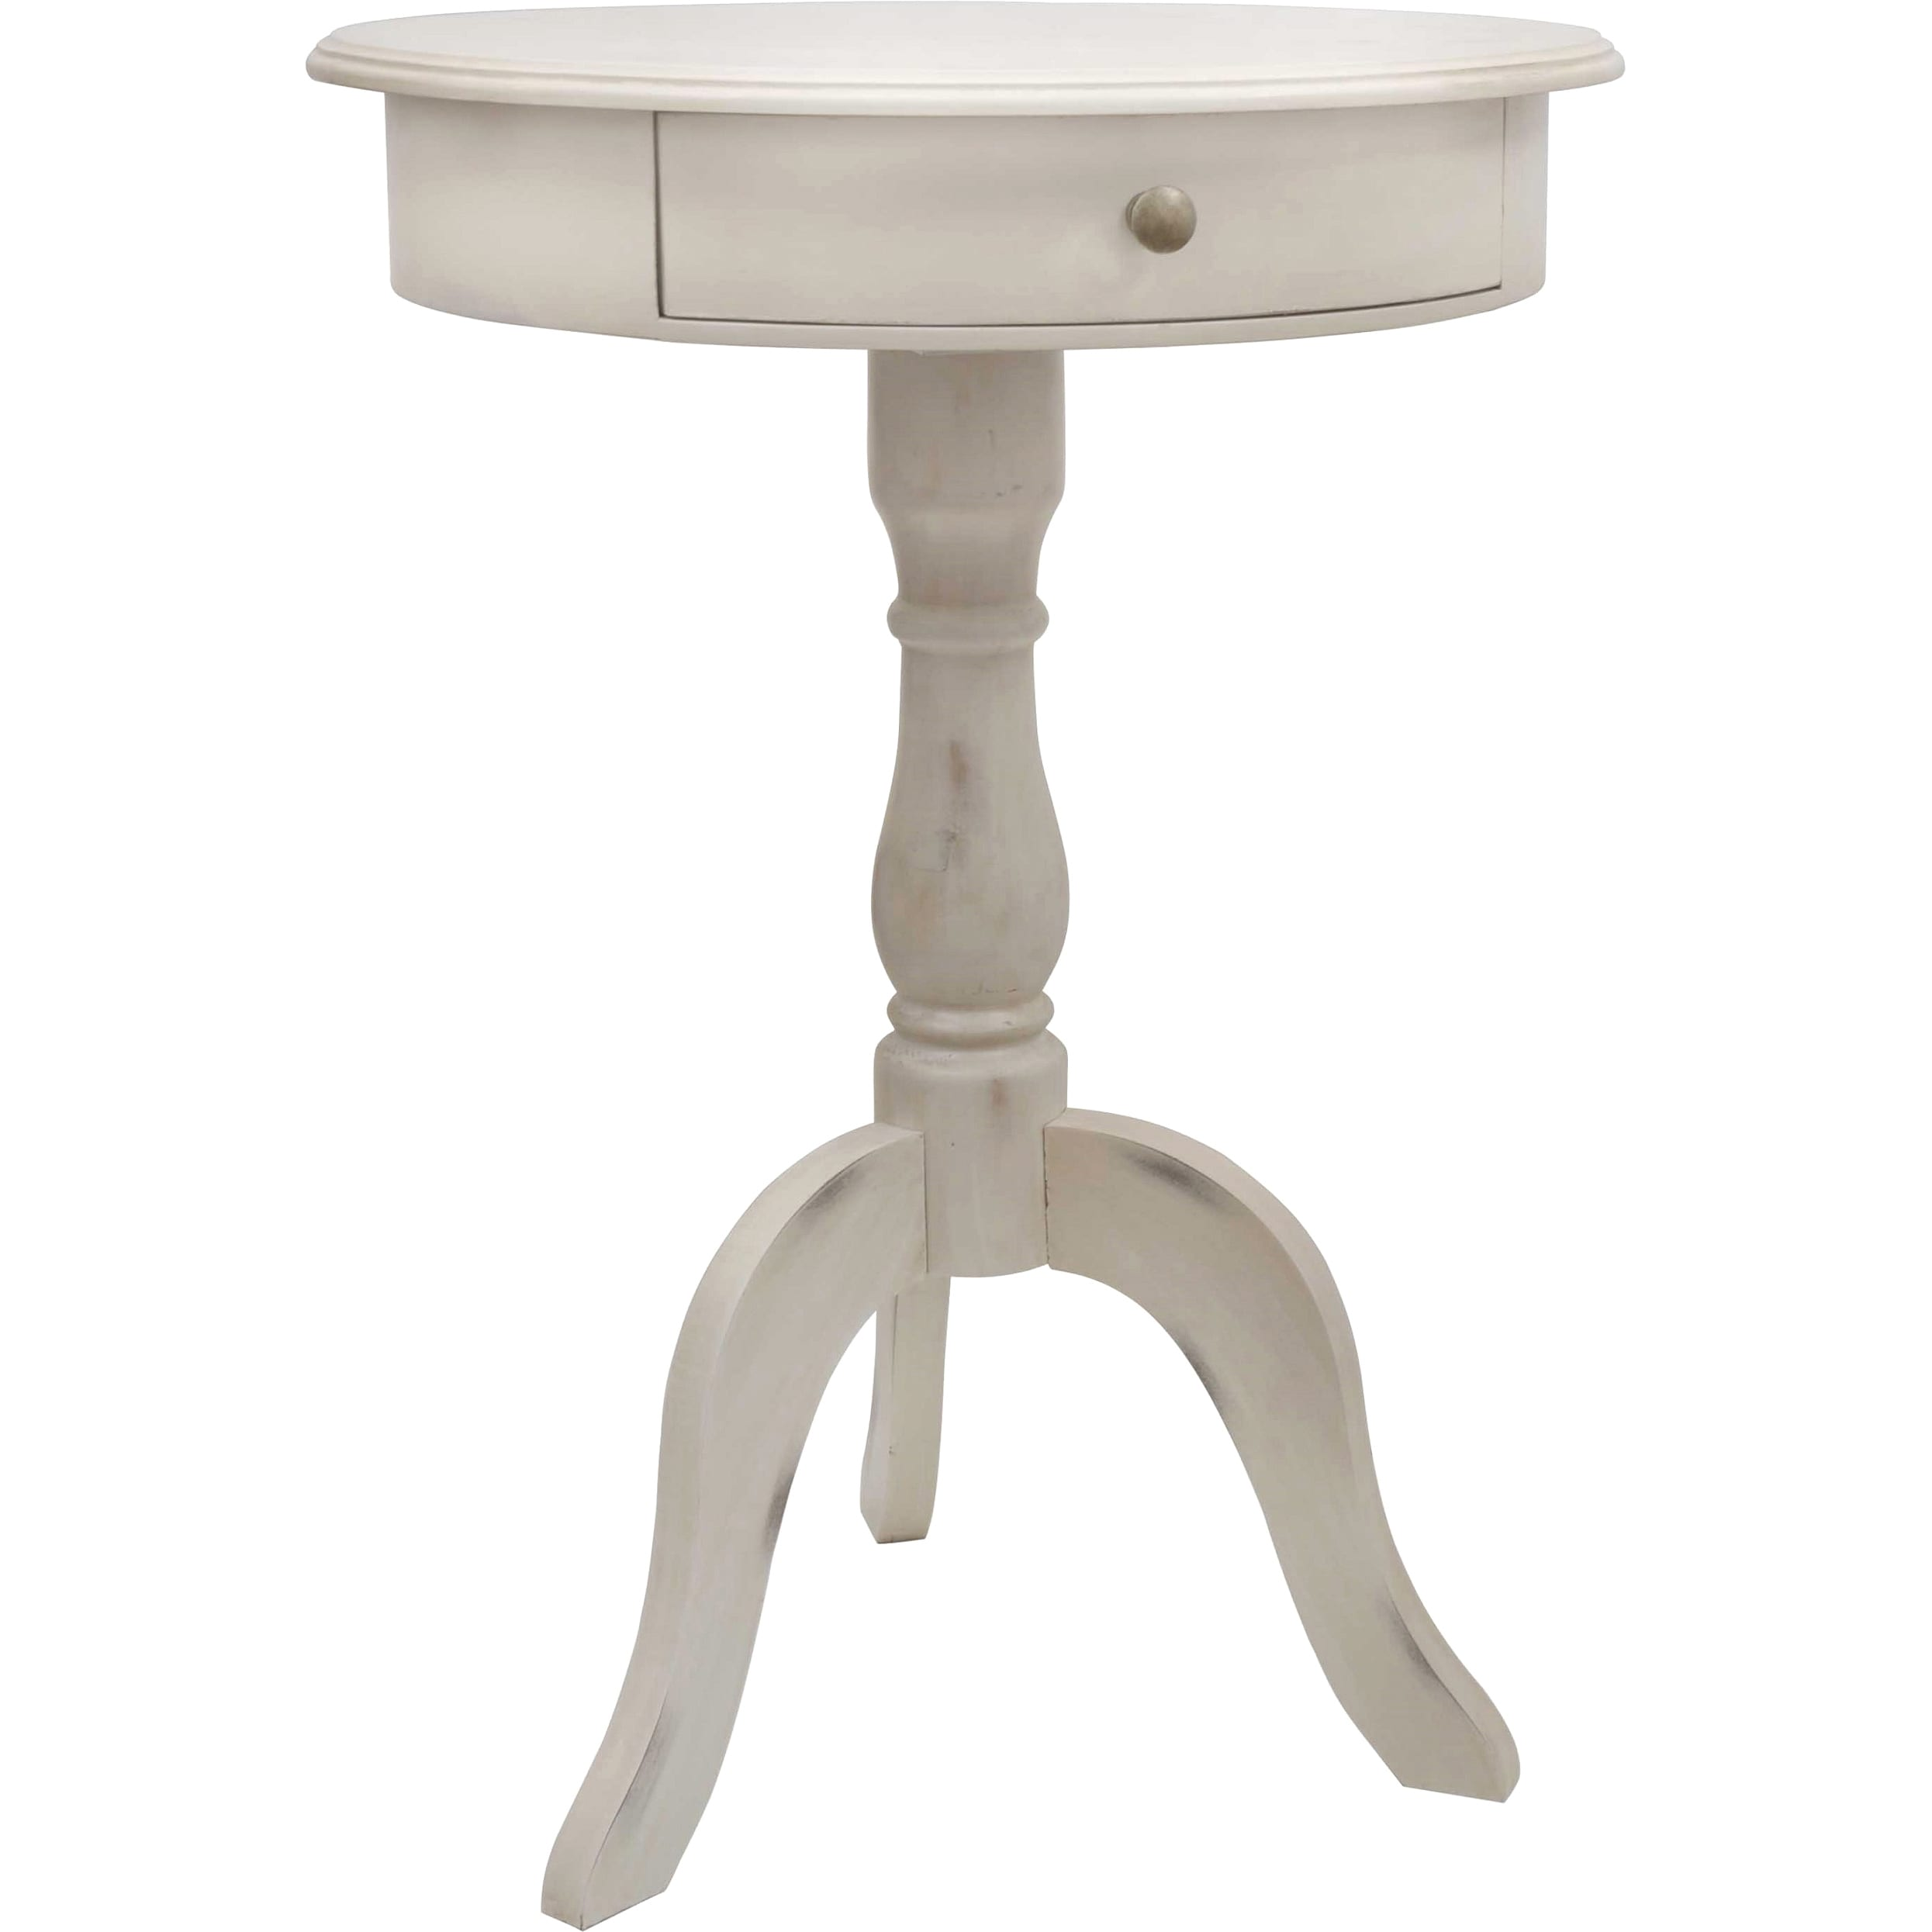 Shop Maison Rouge Fontaine One Drawer Pedestal Table